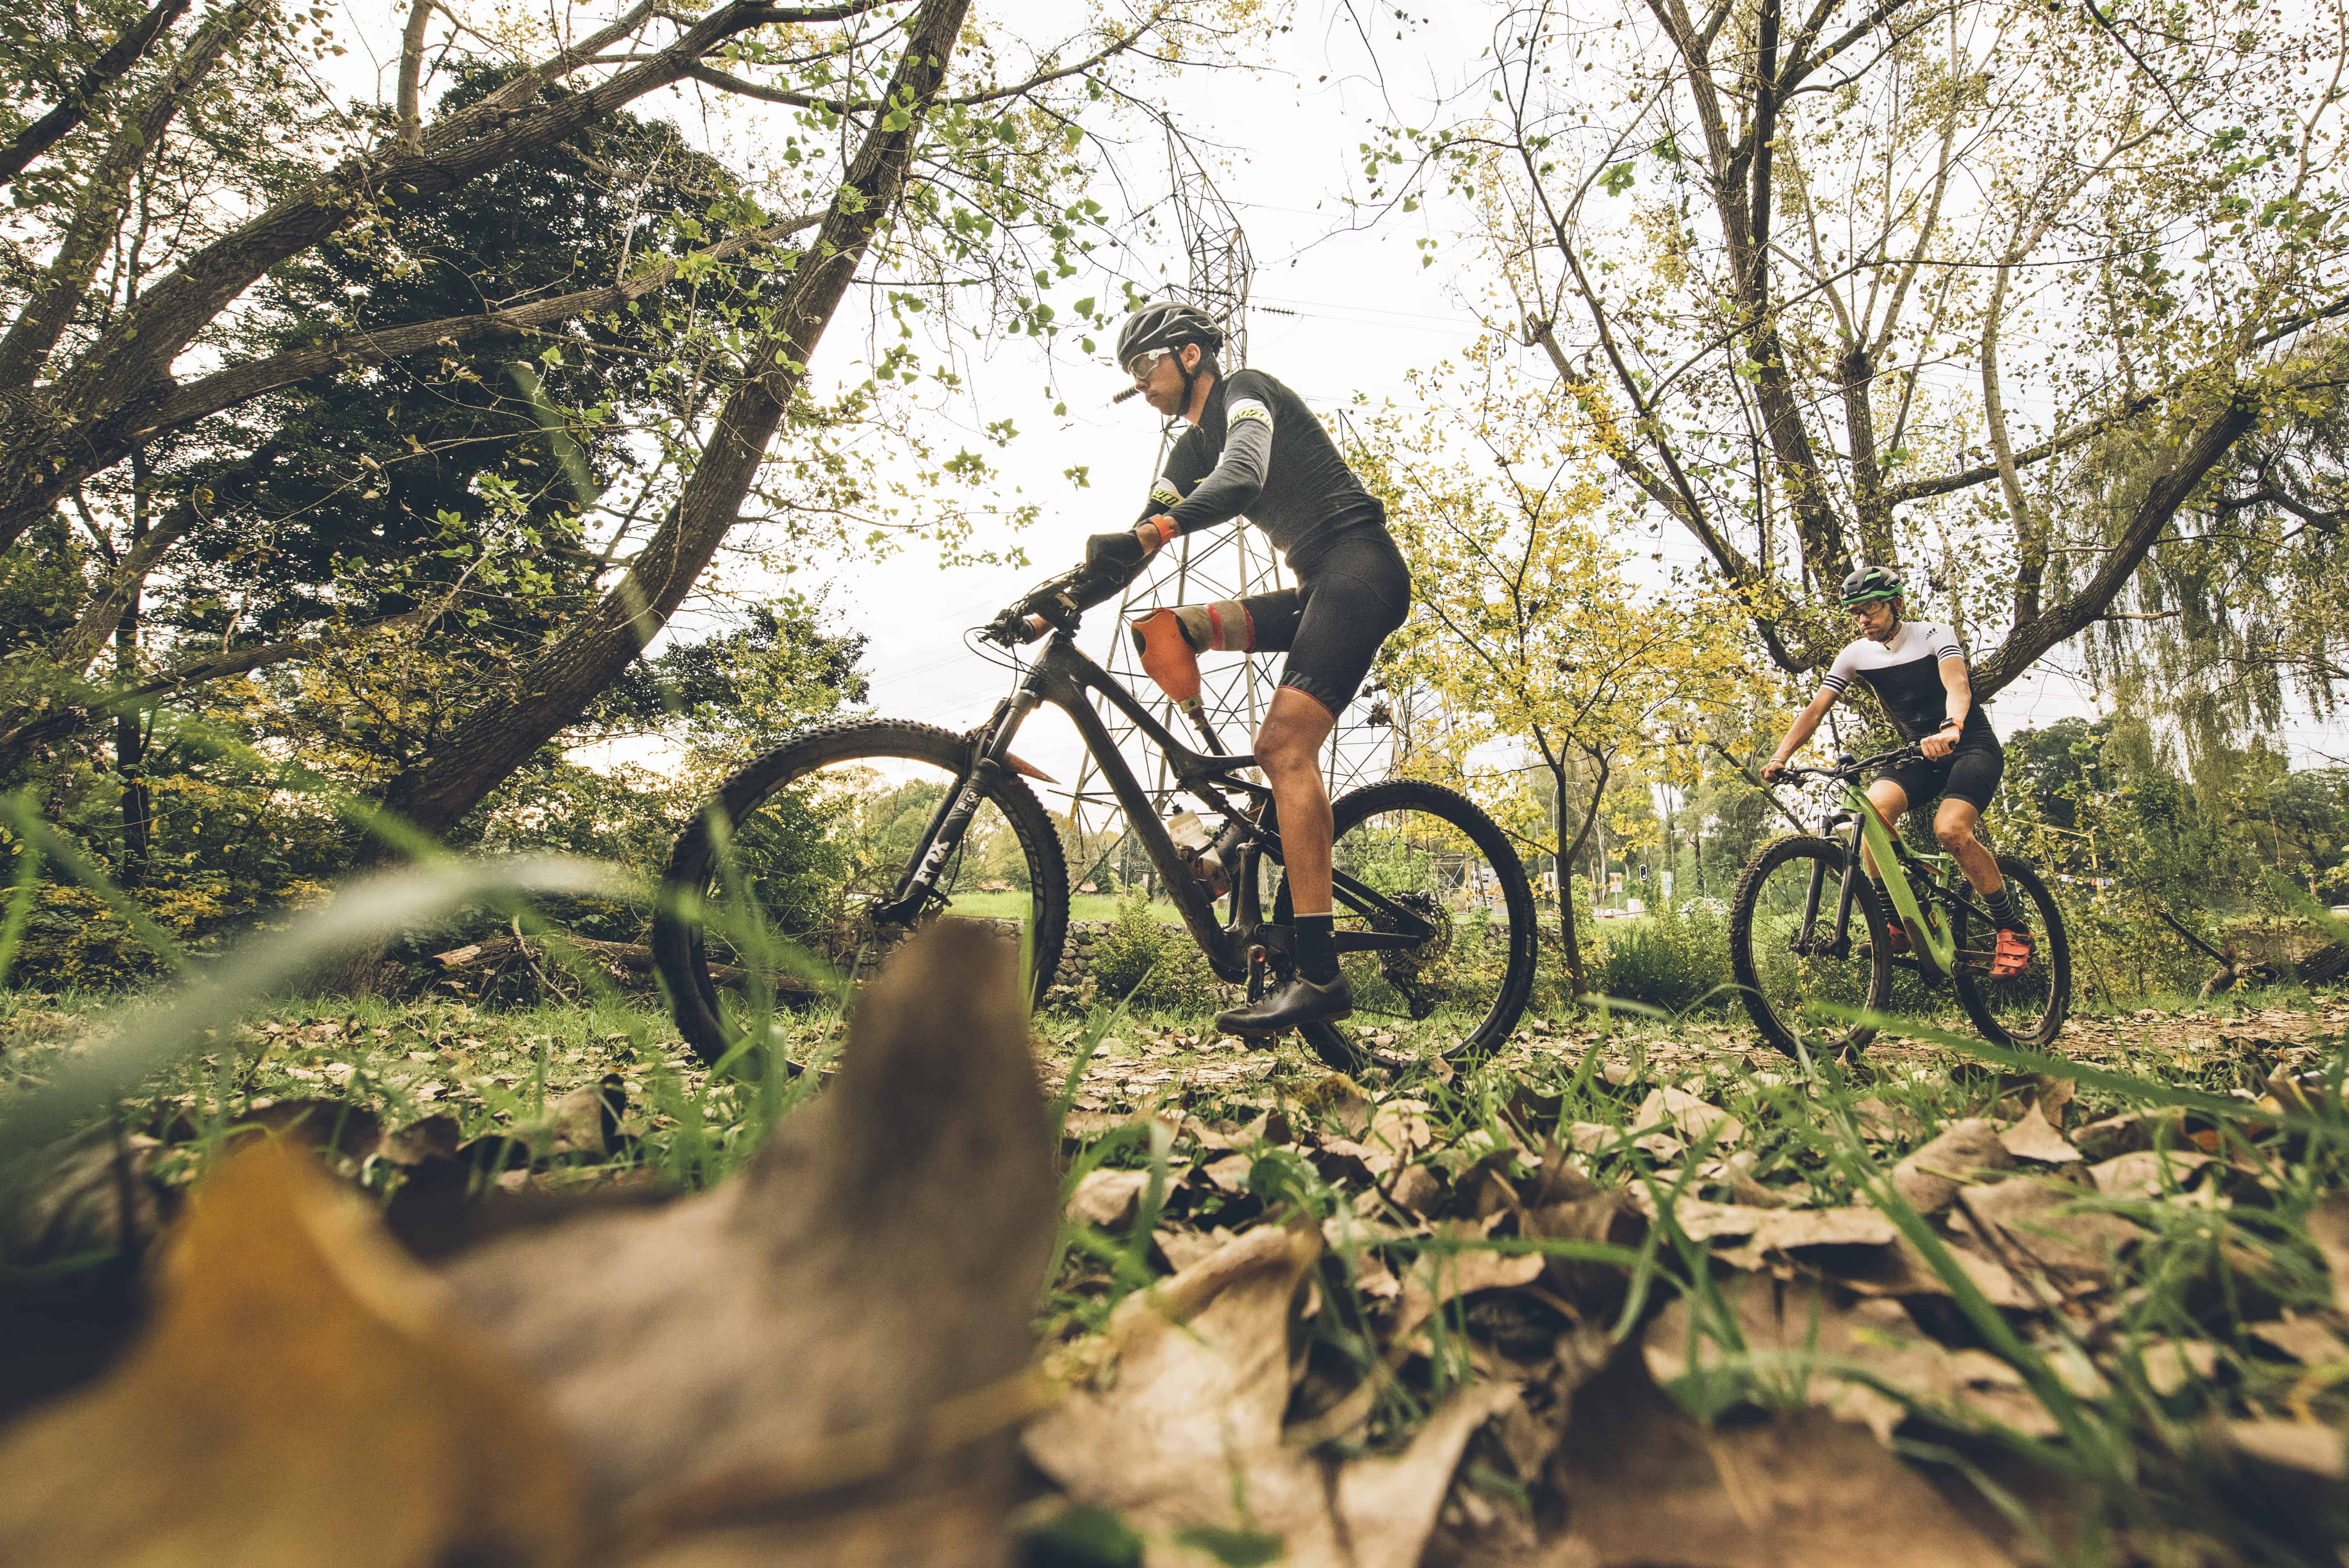 wow-rides-die-spruit-bicycling-magazine-dna-photograpers-33